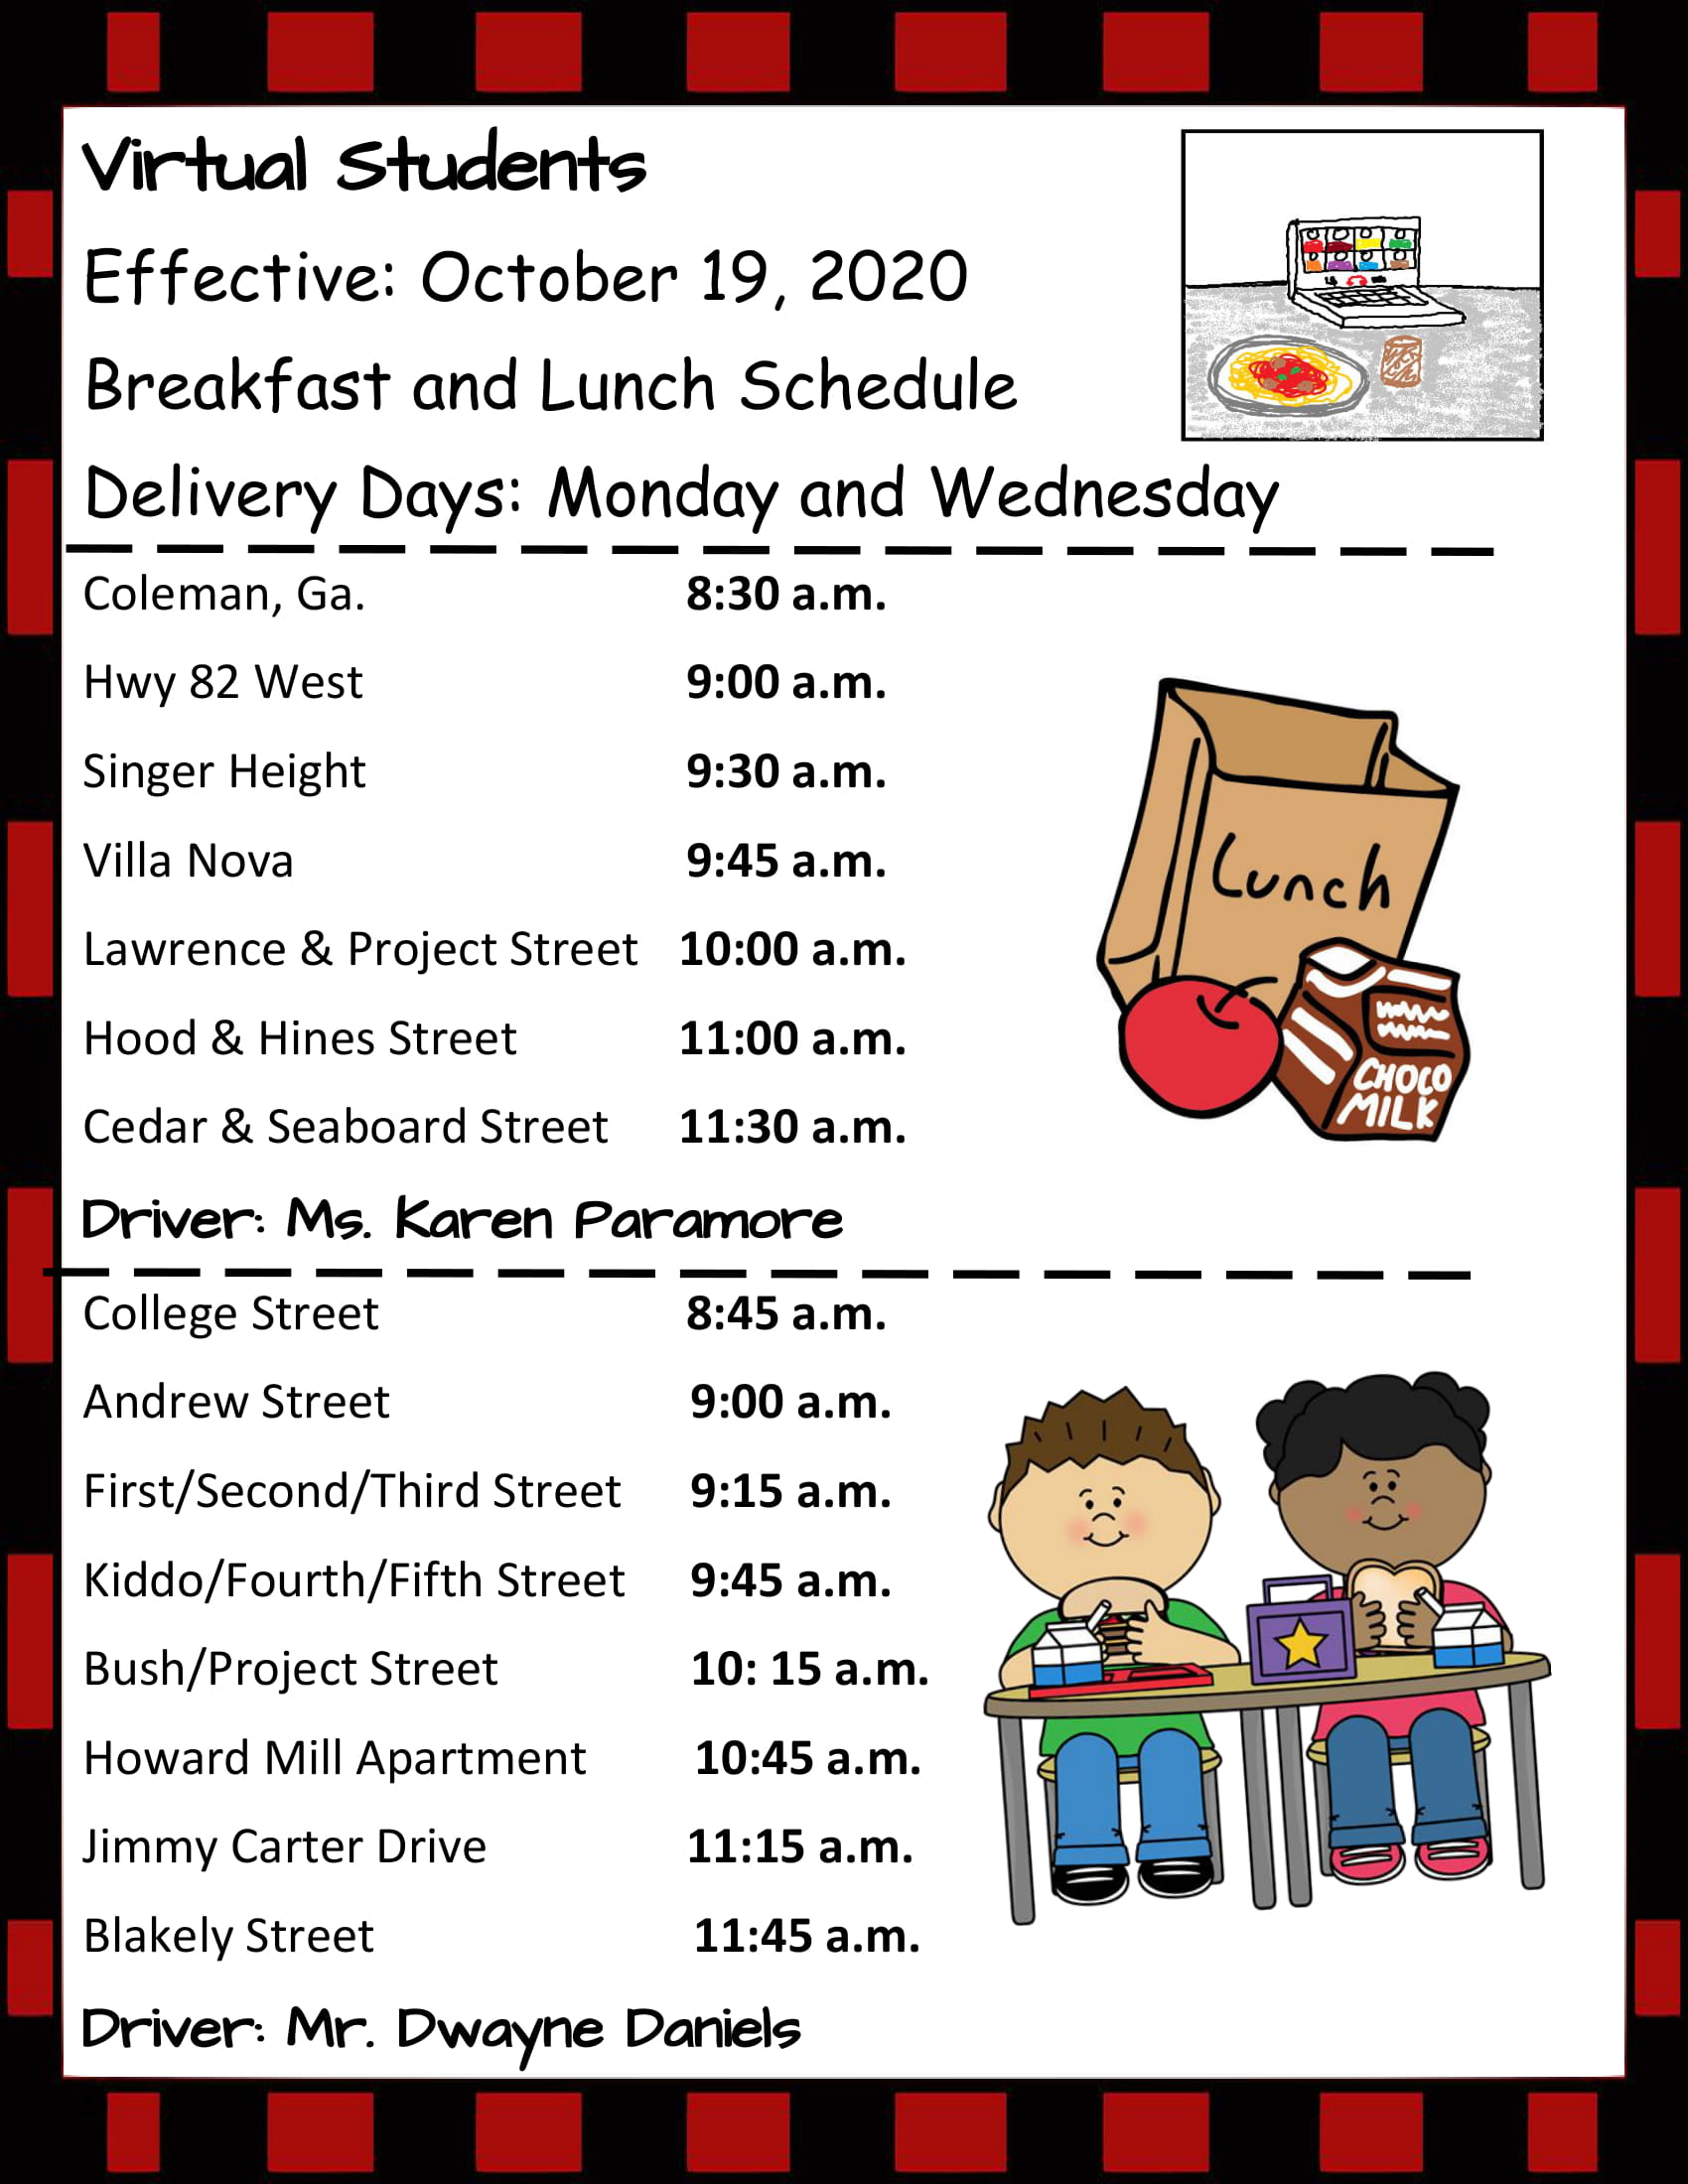 Breakfast and Lunch Delivery Schedule for Virtual Learners